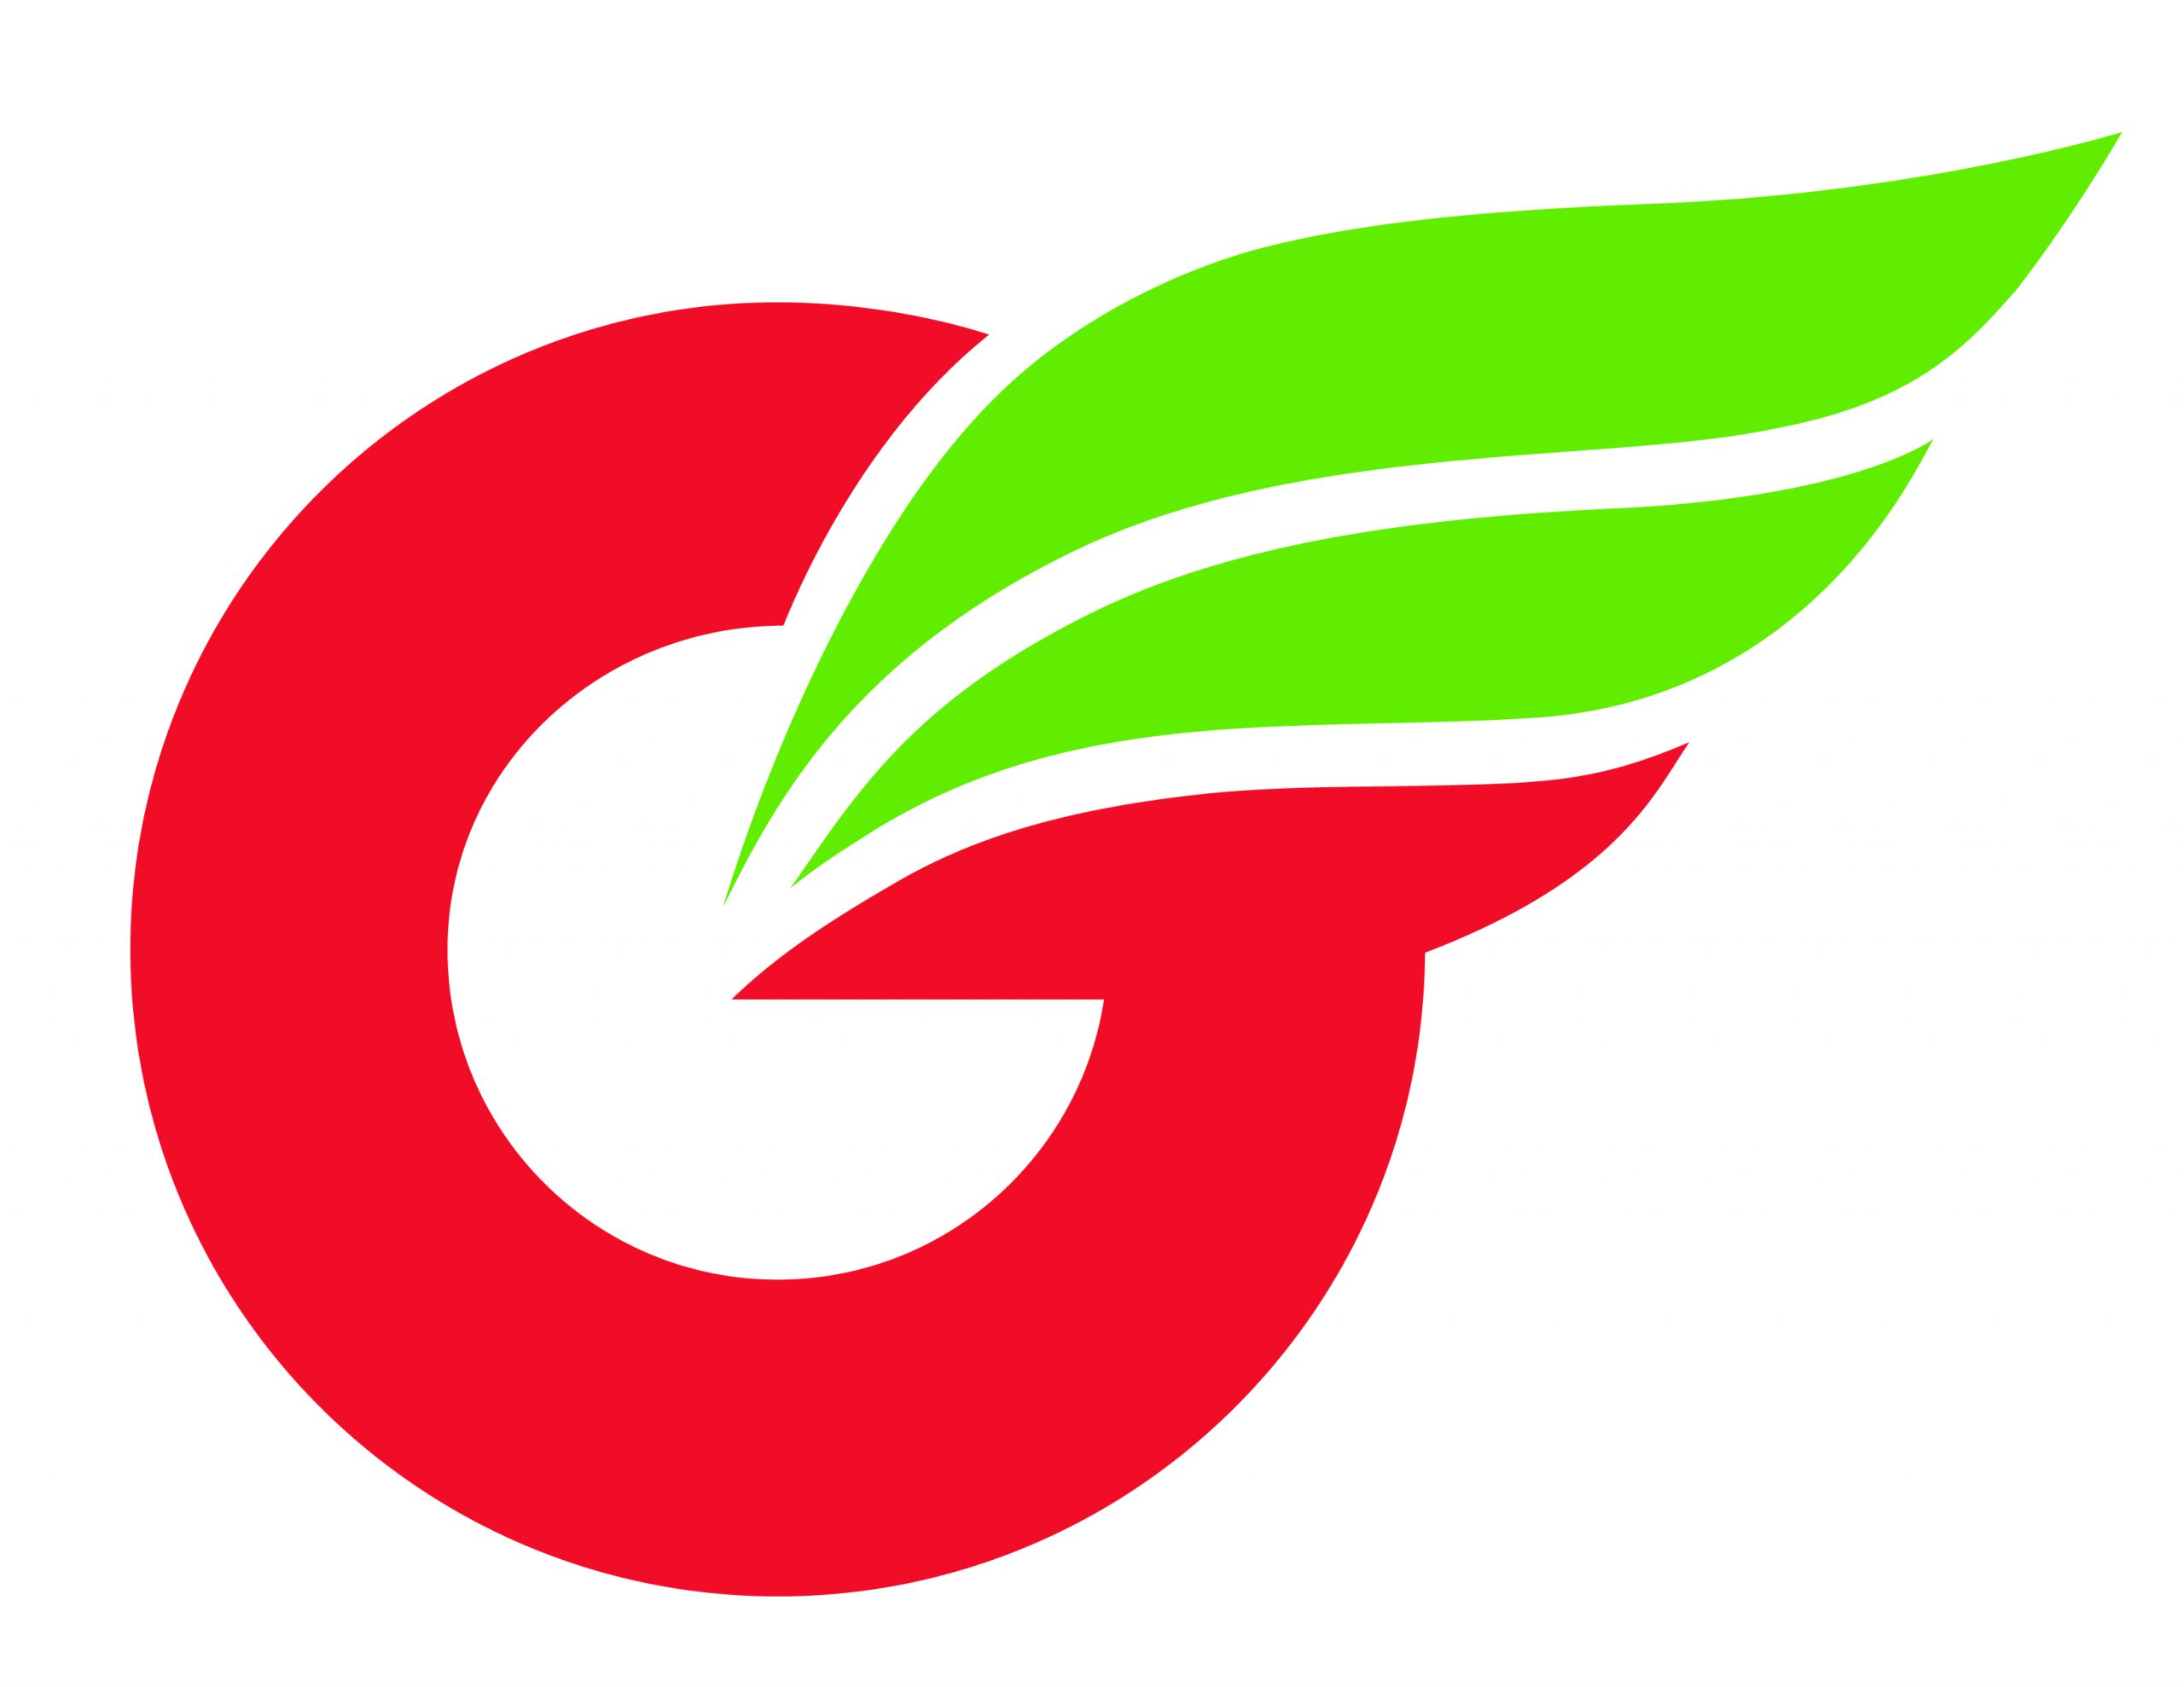 Project image 1 for Identity, Greenwing Motorcycles